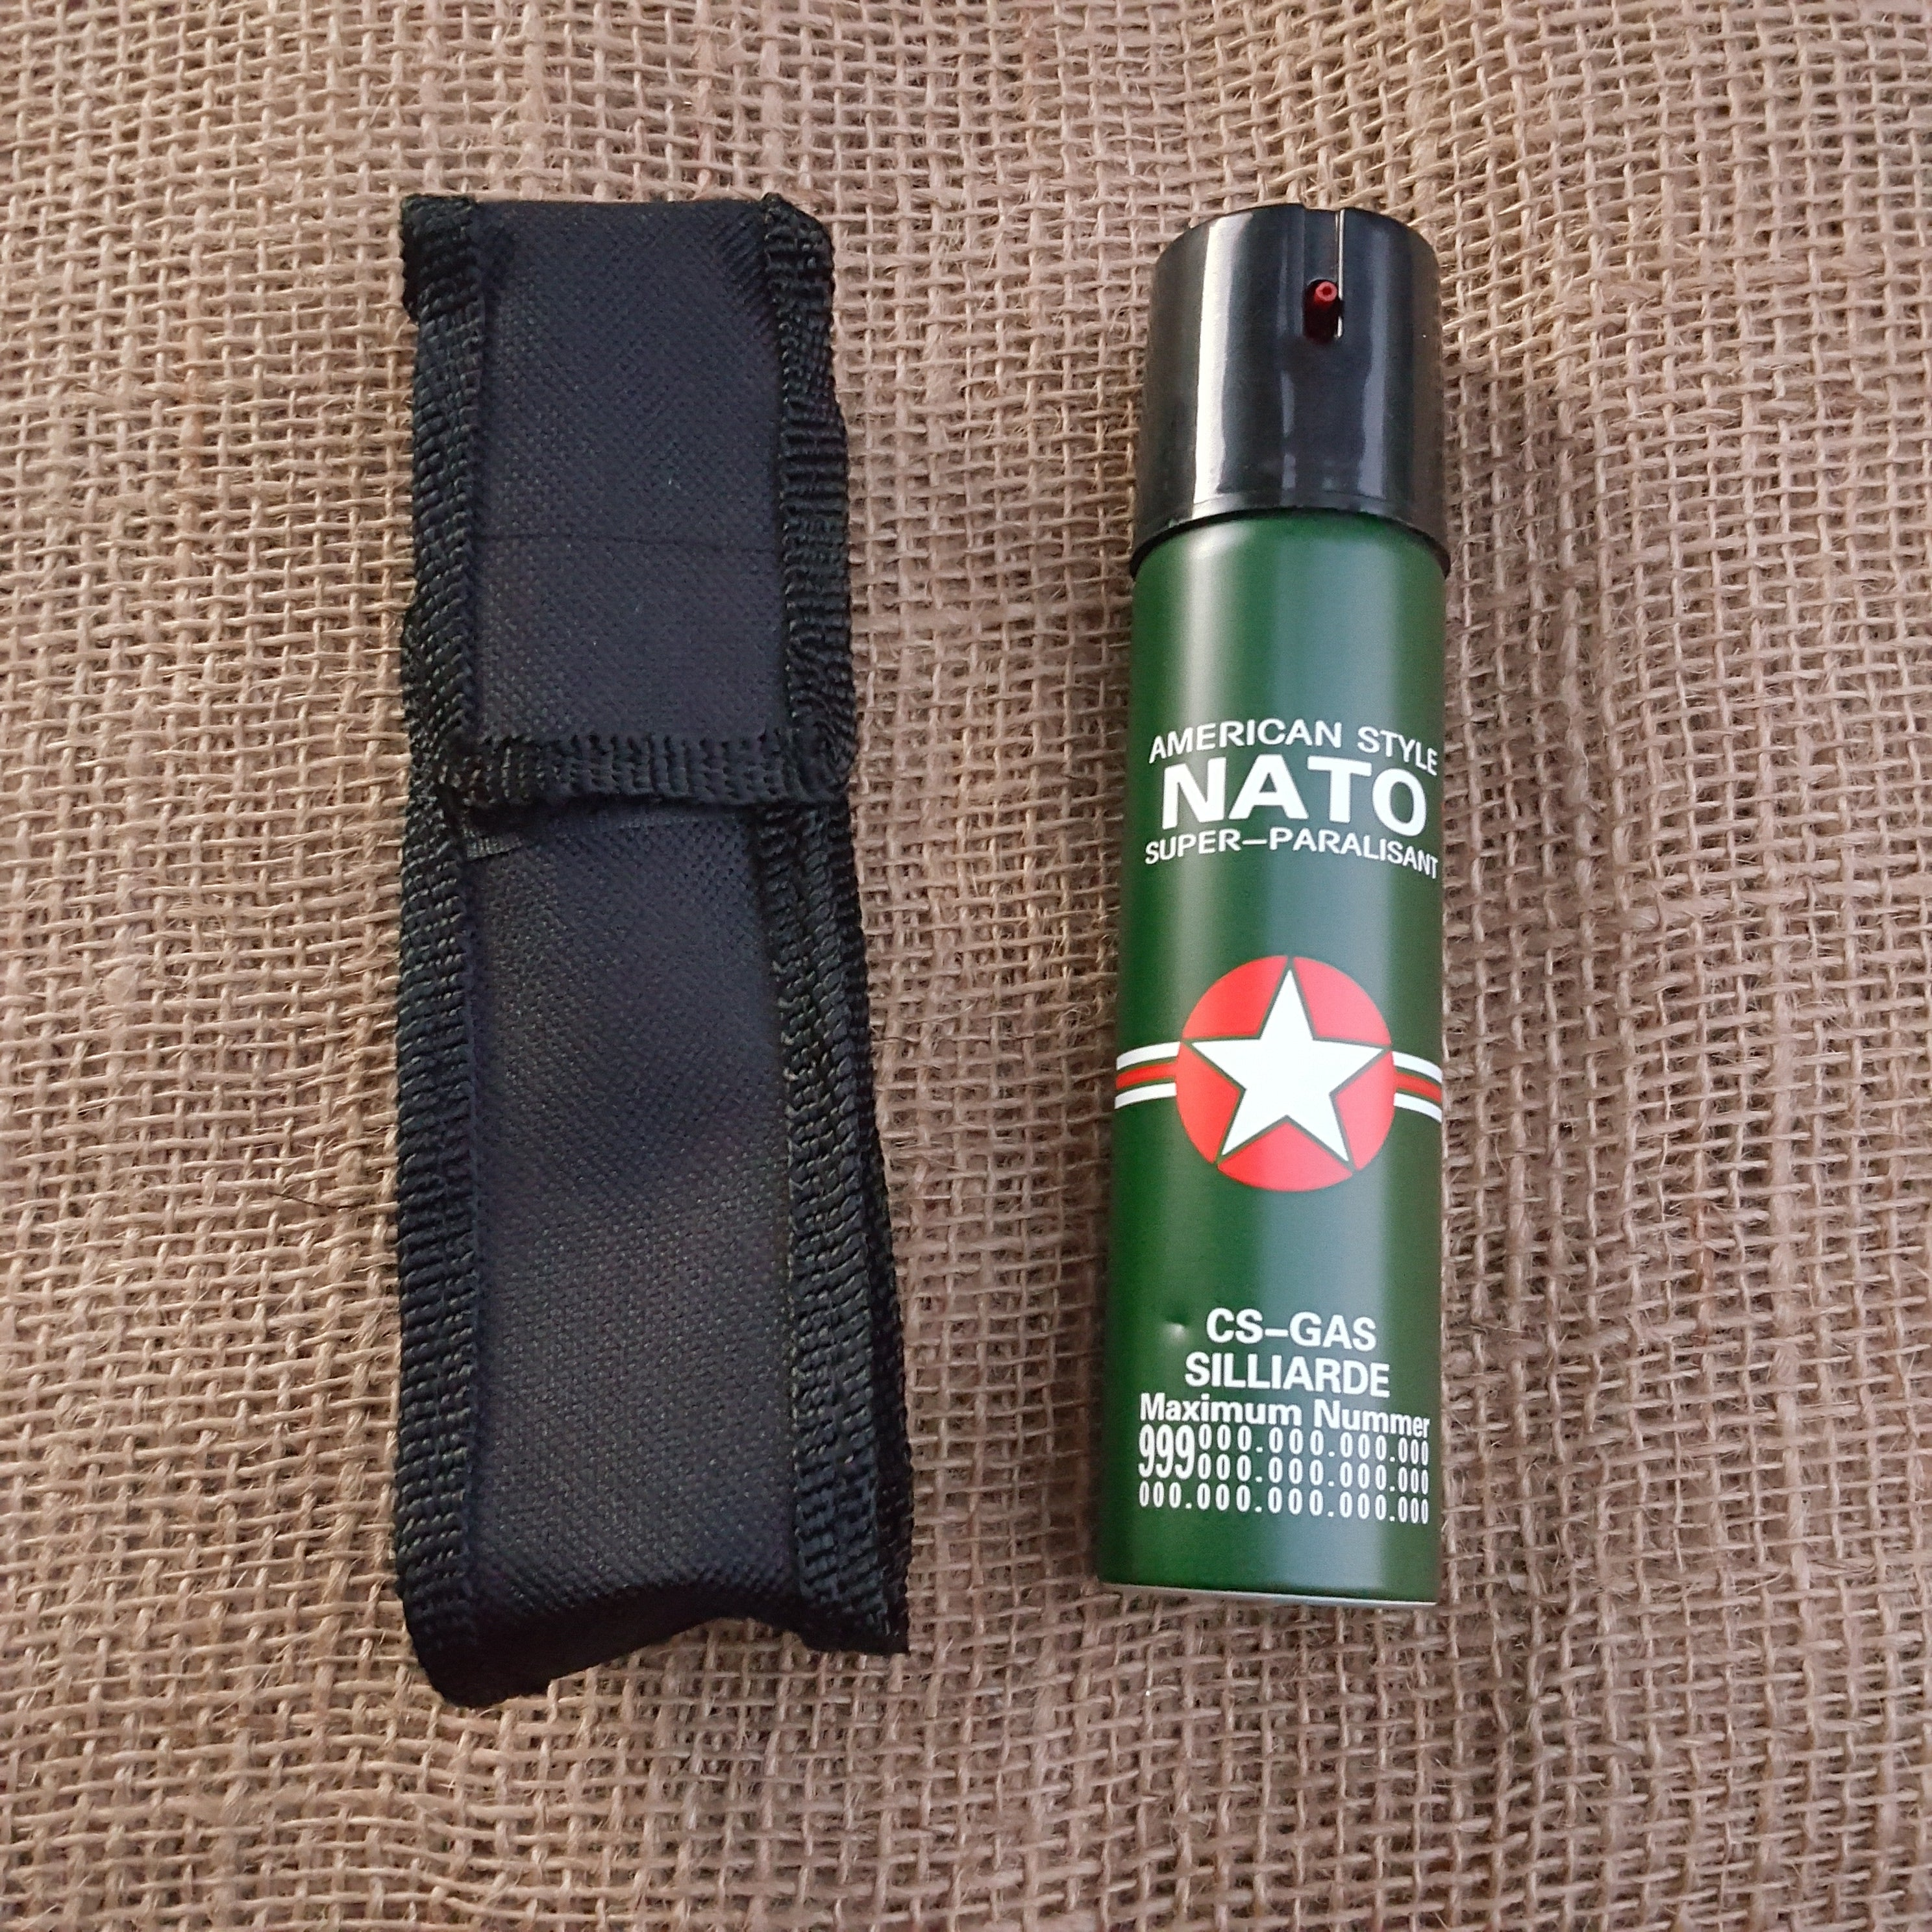 Pepper spray ... 110 ml